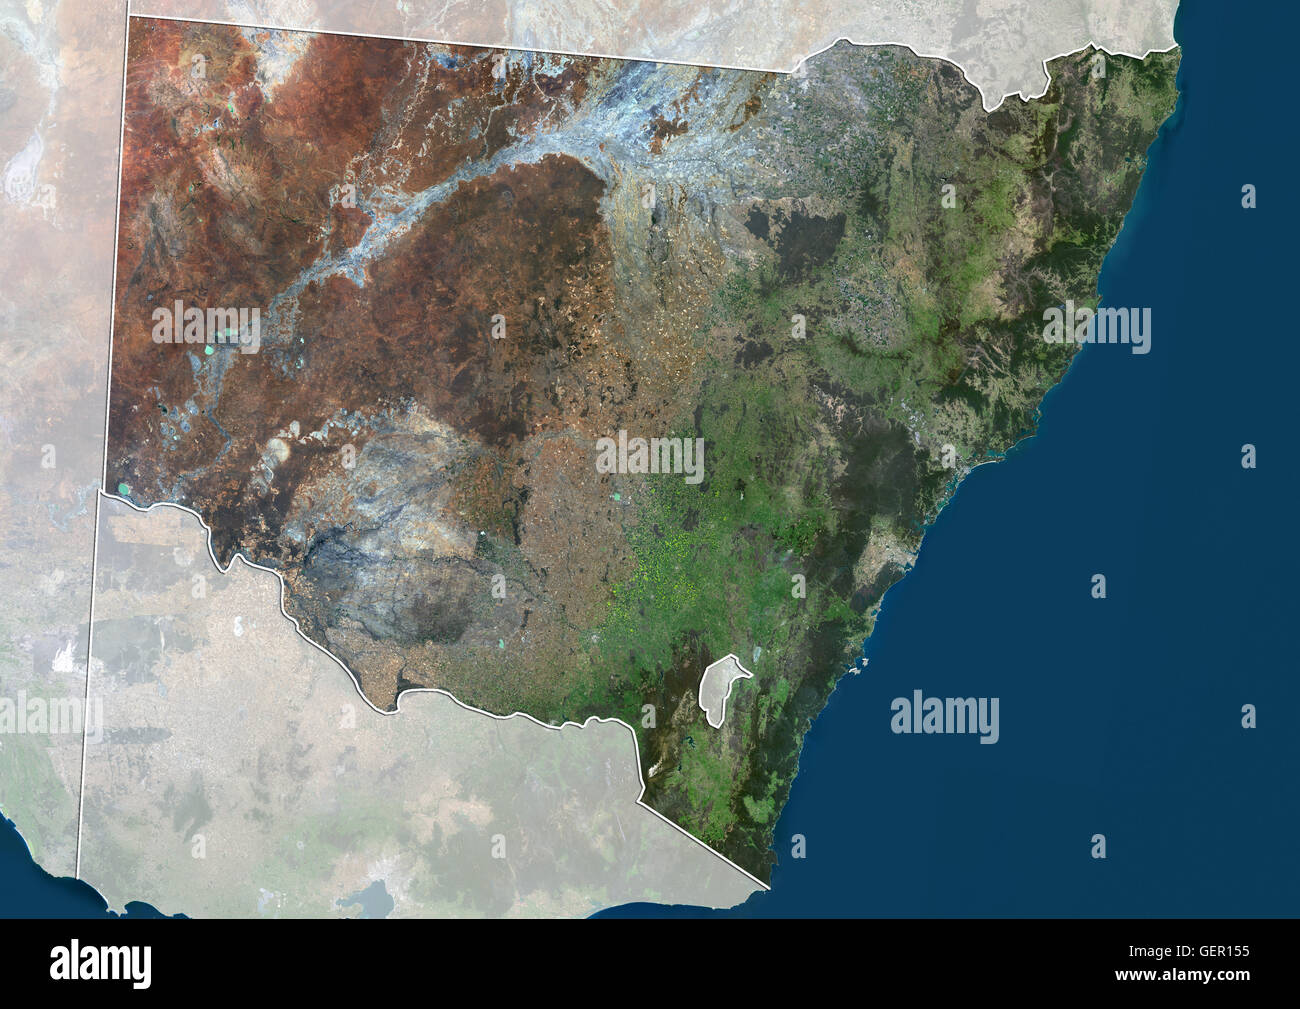 Satellite View Of New South Wales Australia With Administrative - World satellite map 2014